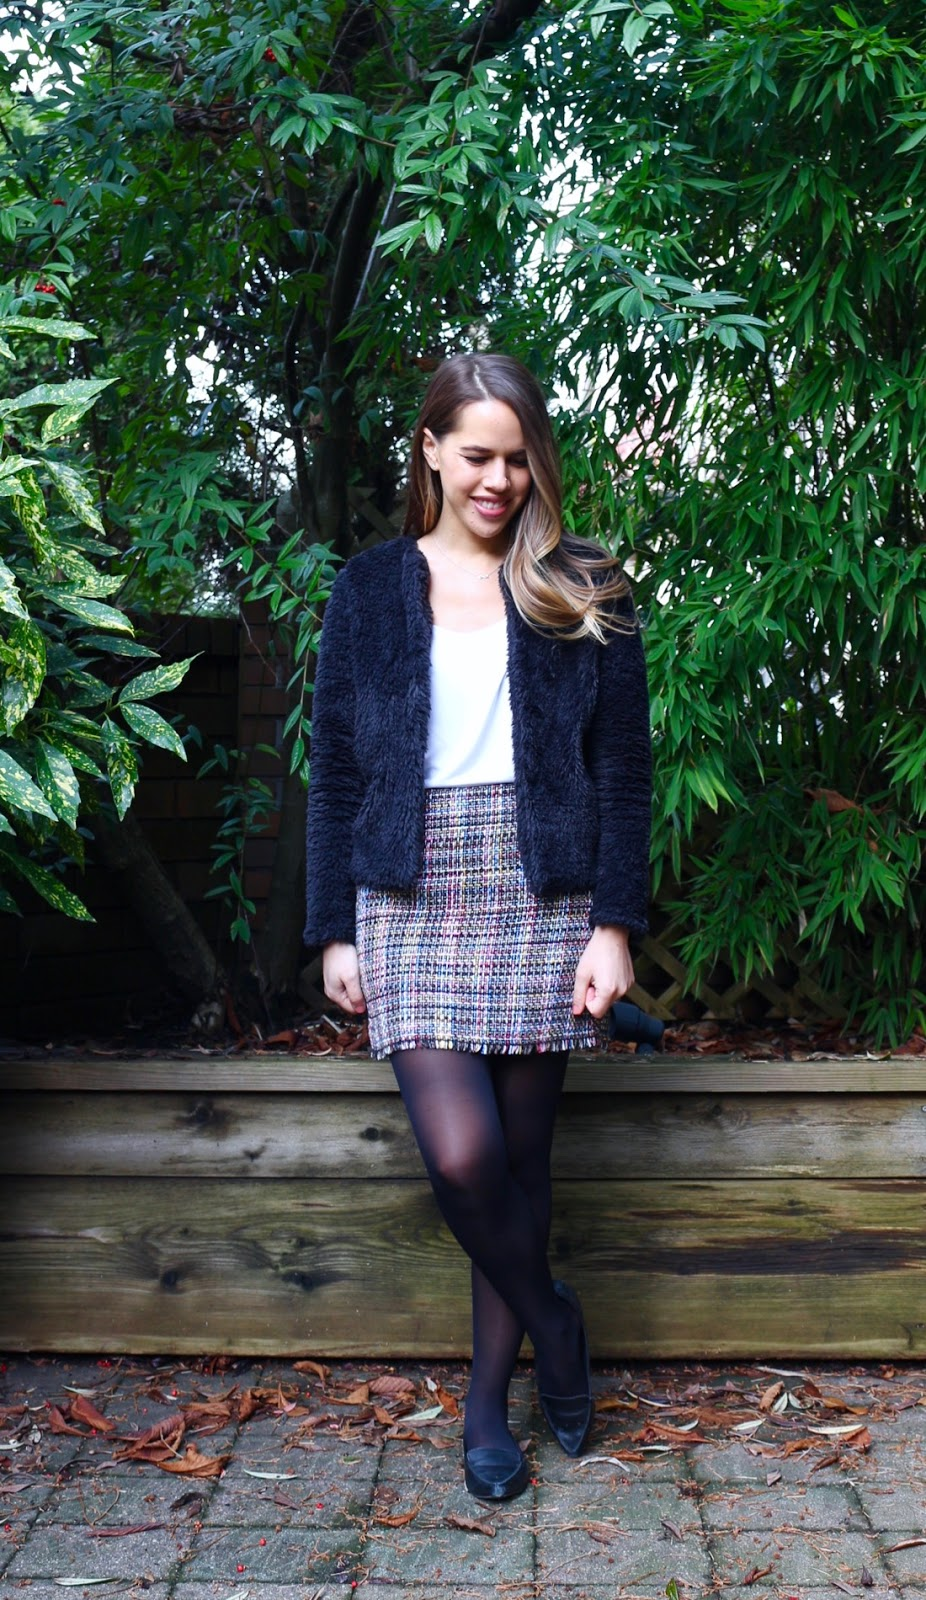 Jules in Flats - Faux Fur Bomber Cardigan Jacket with Tweed Mini Skirt (Business Casual Winter Workwear on a Budget)